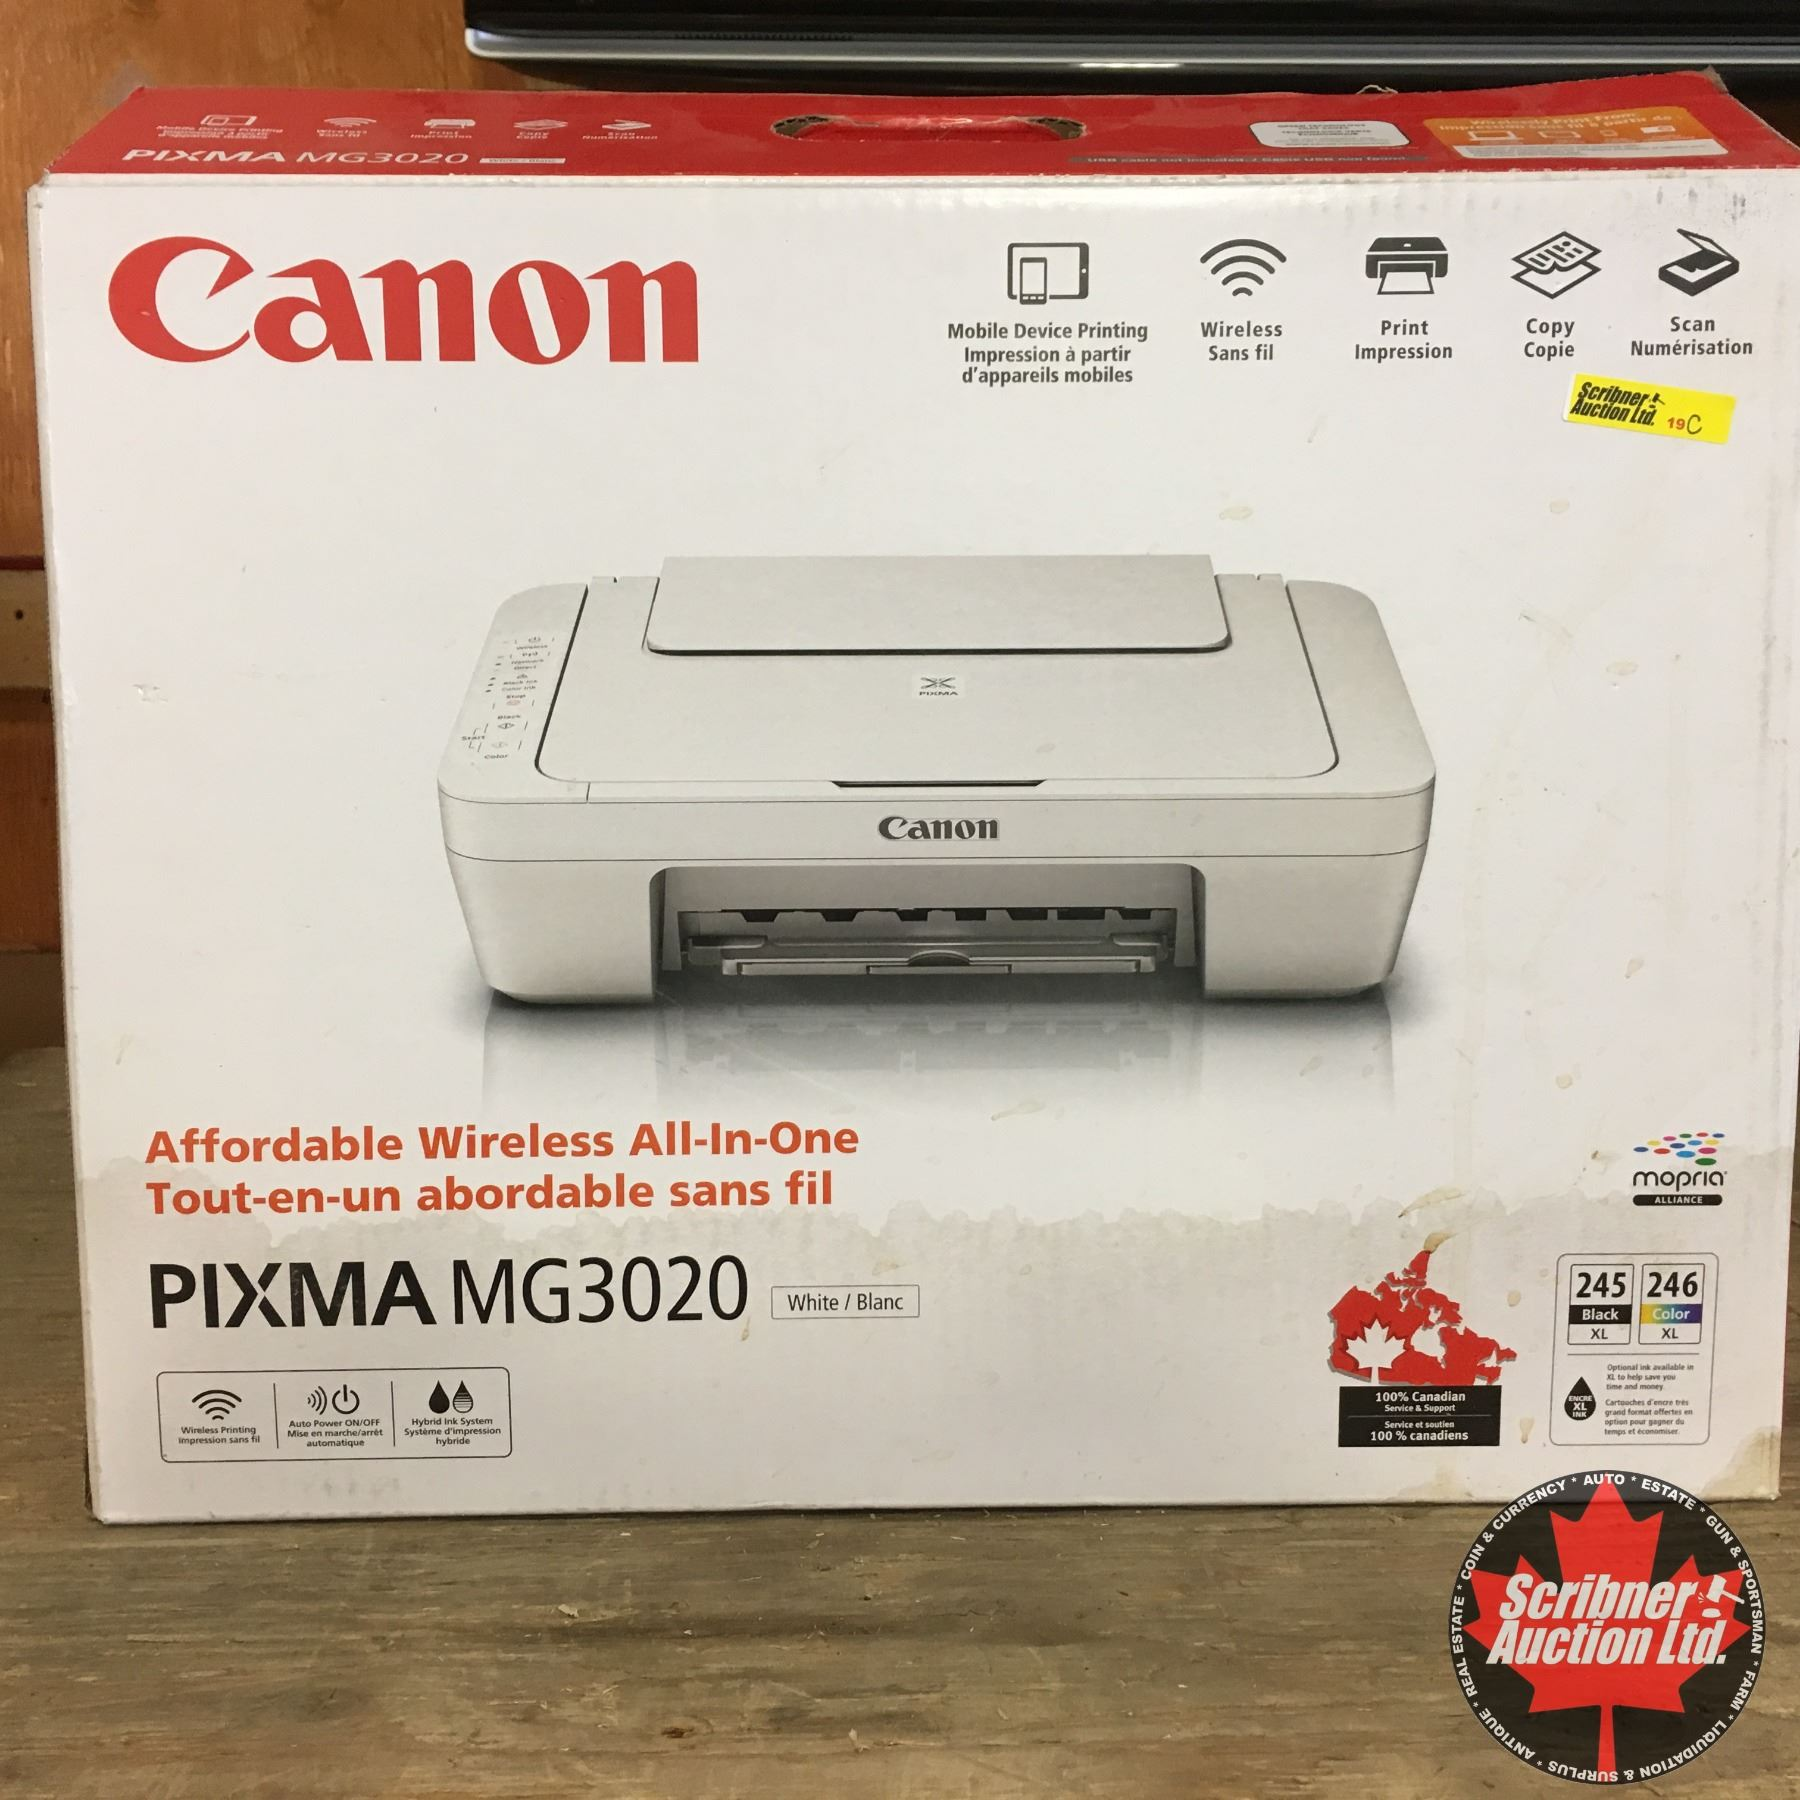 Wireless Canon All-In-One Printer/Copier/Scanner (Never Used)